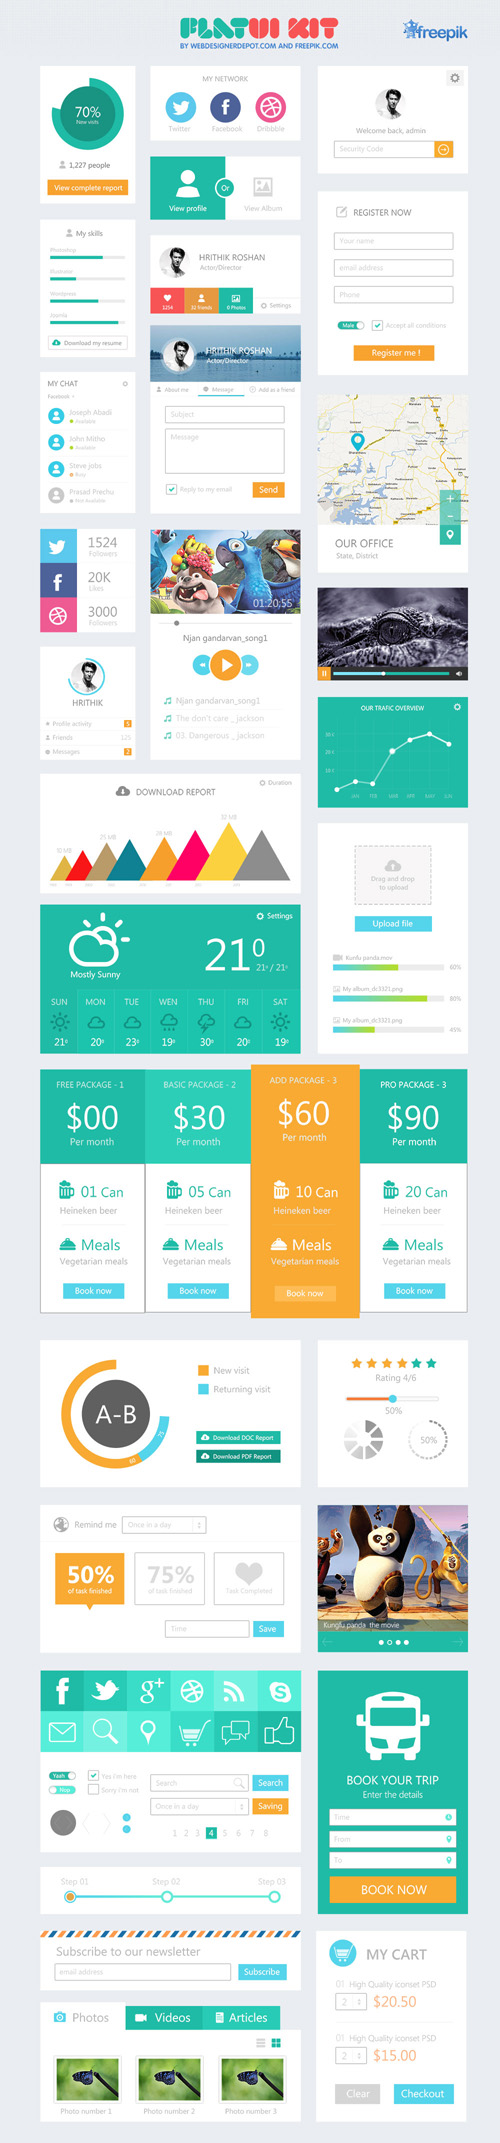 12 Flat Mobile UI Design PSD Images